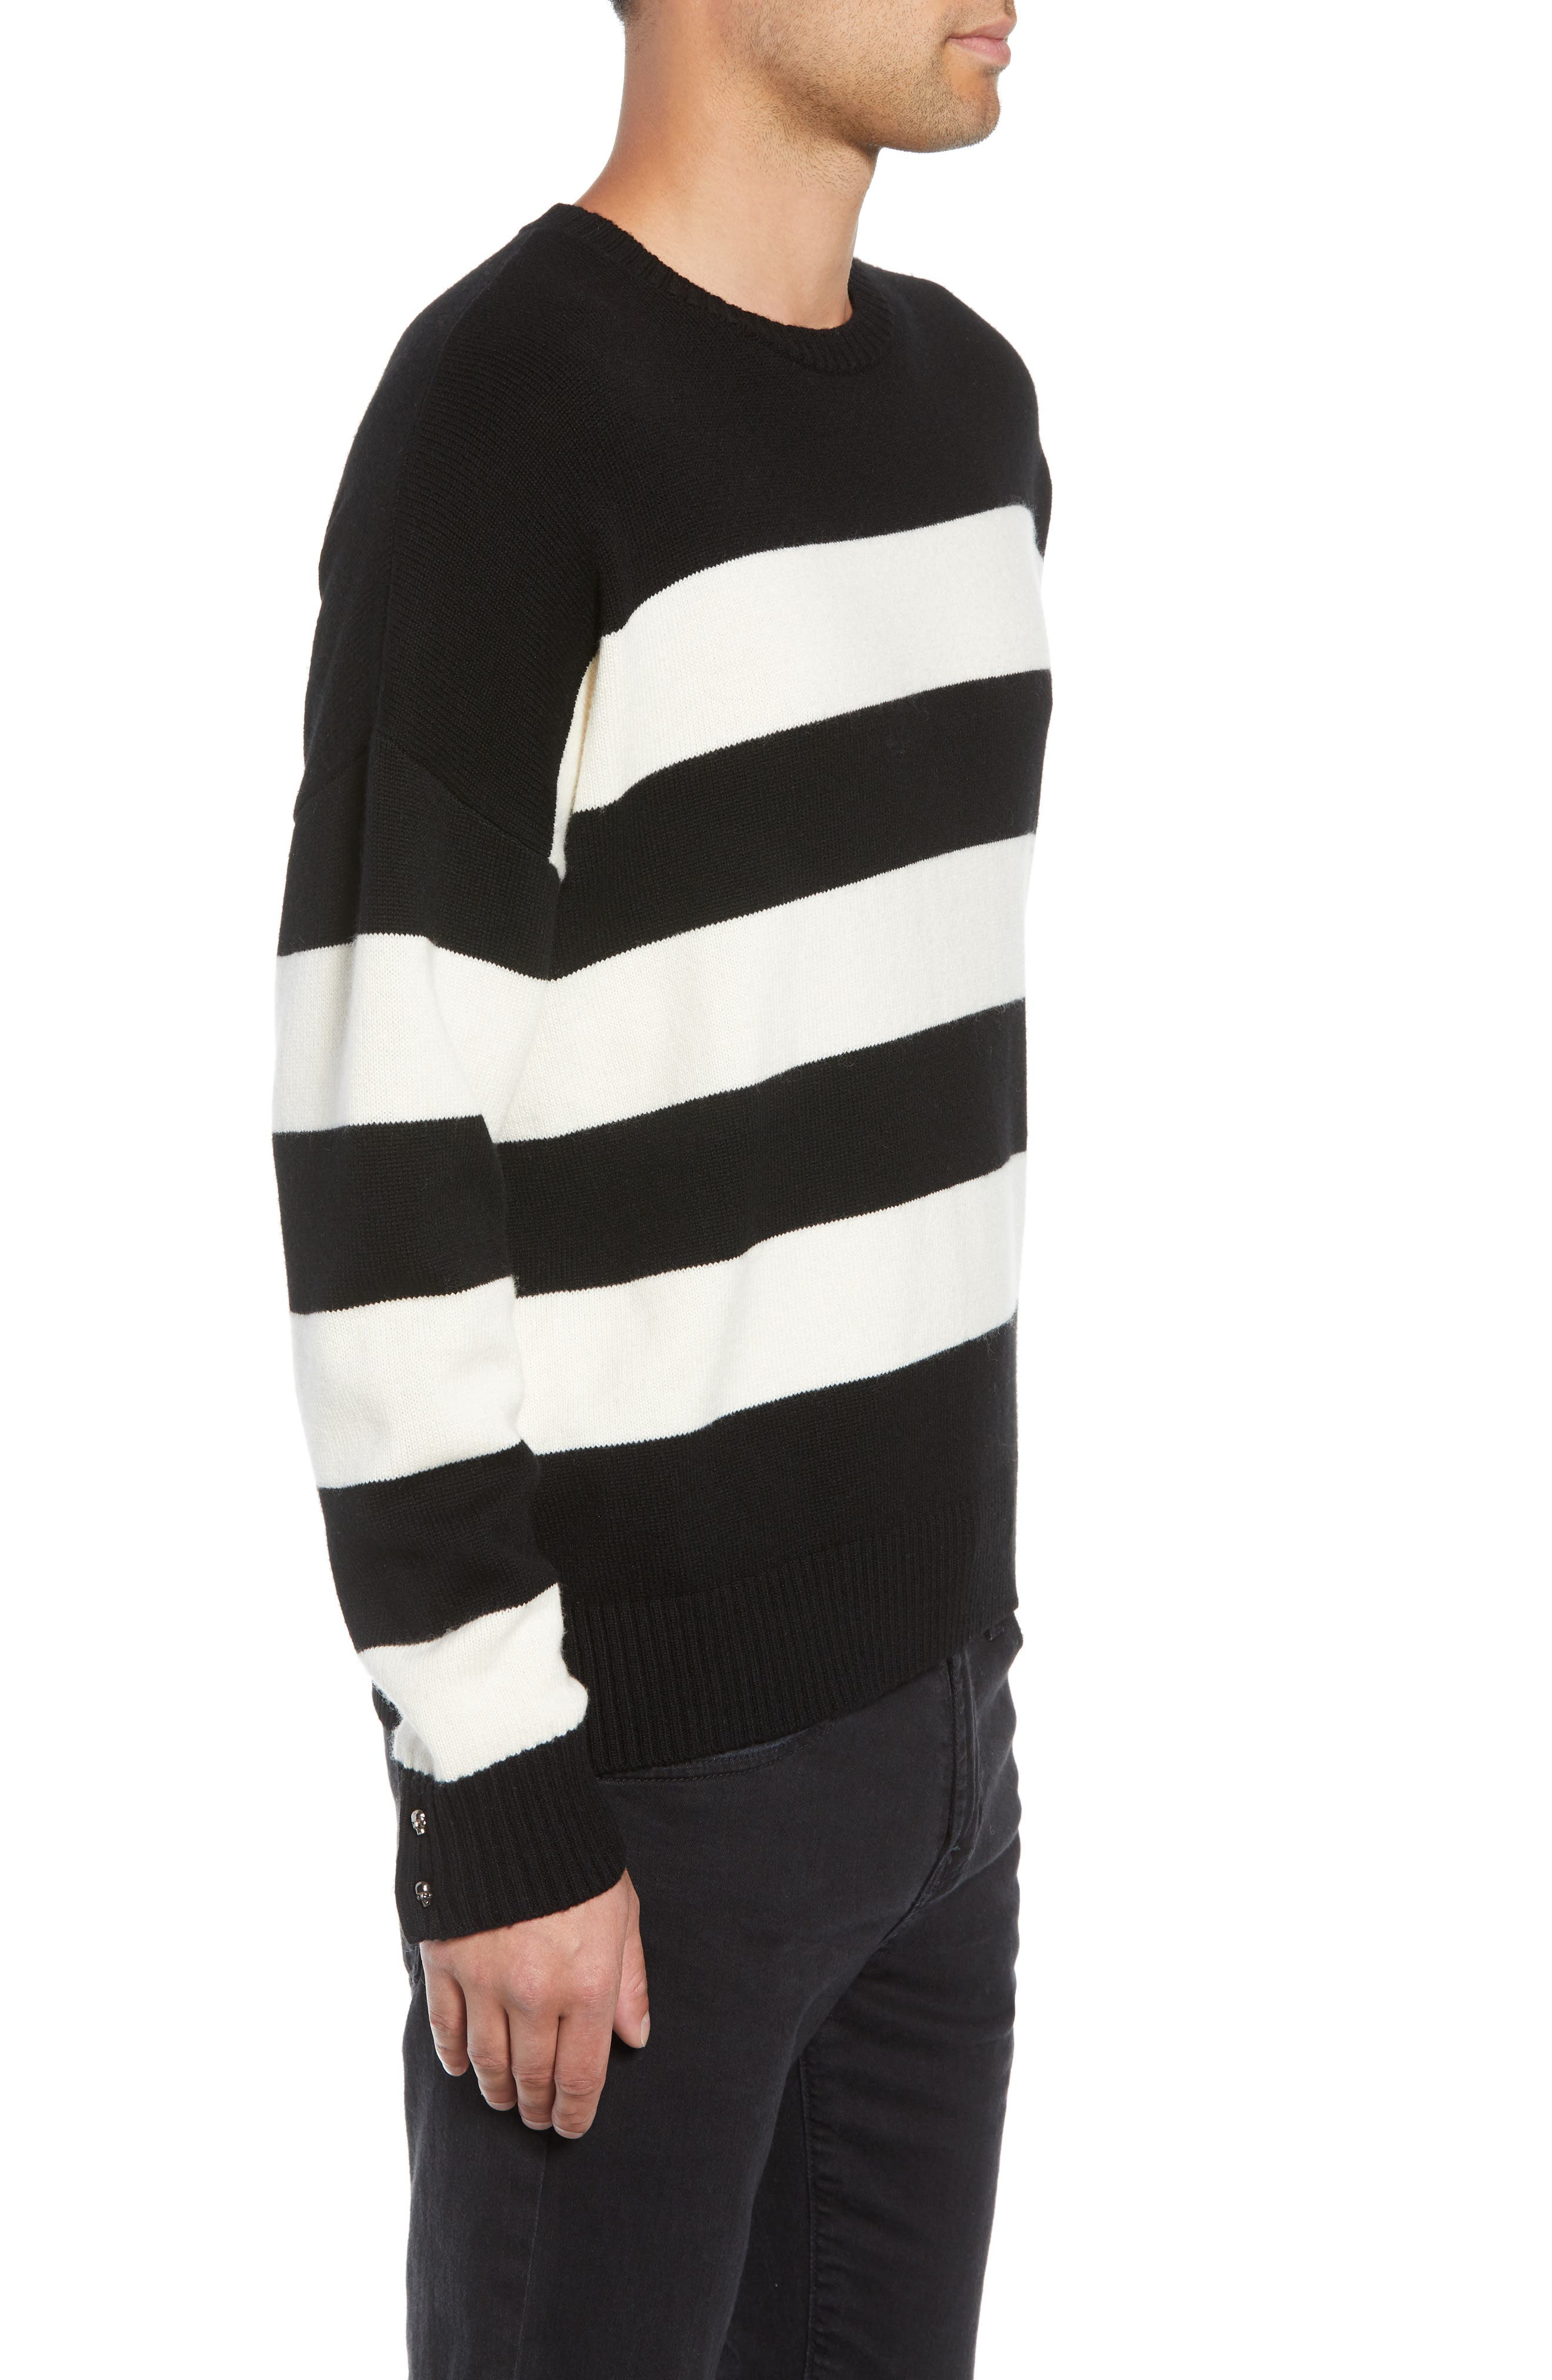 THE KOOPLES,                             Classic Fit Striped Sweater,                             Alternate thumbnail 3, color,                             001